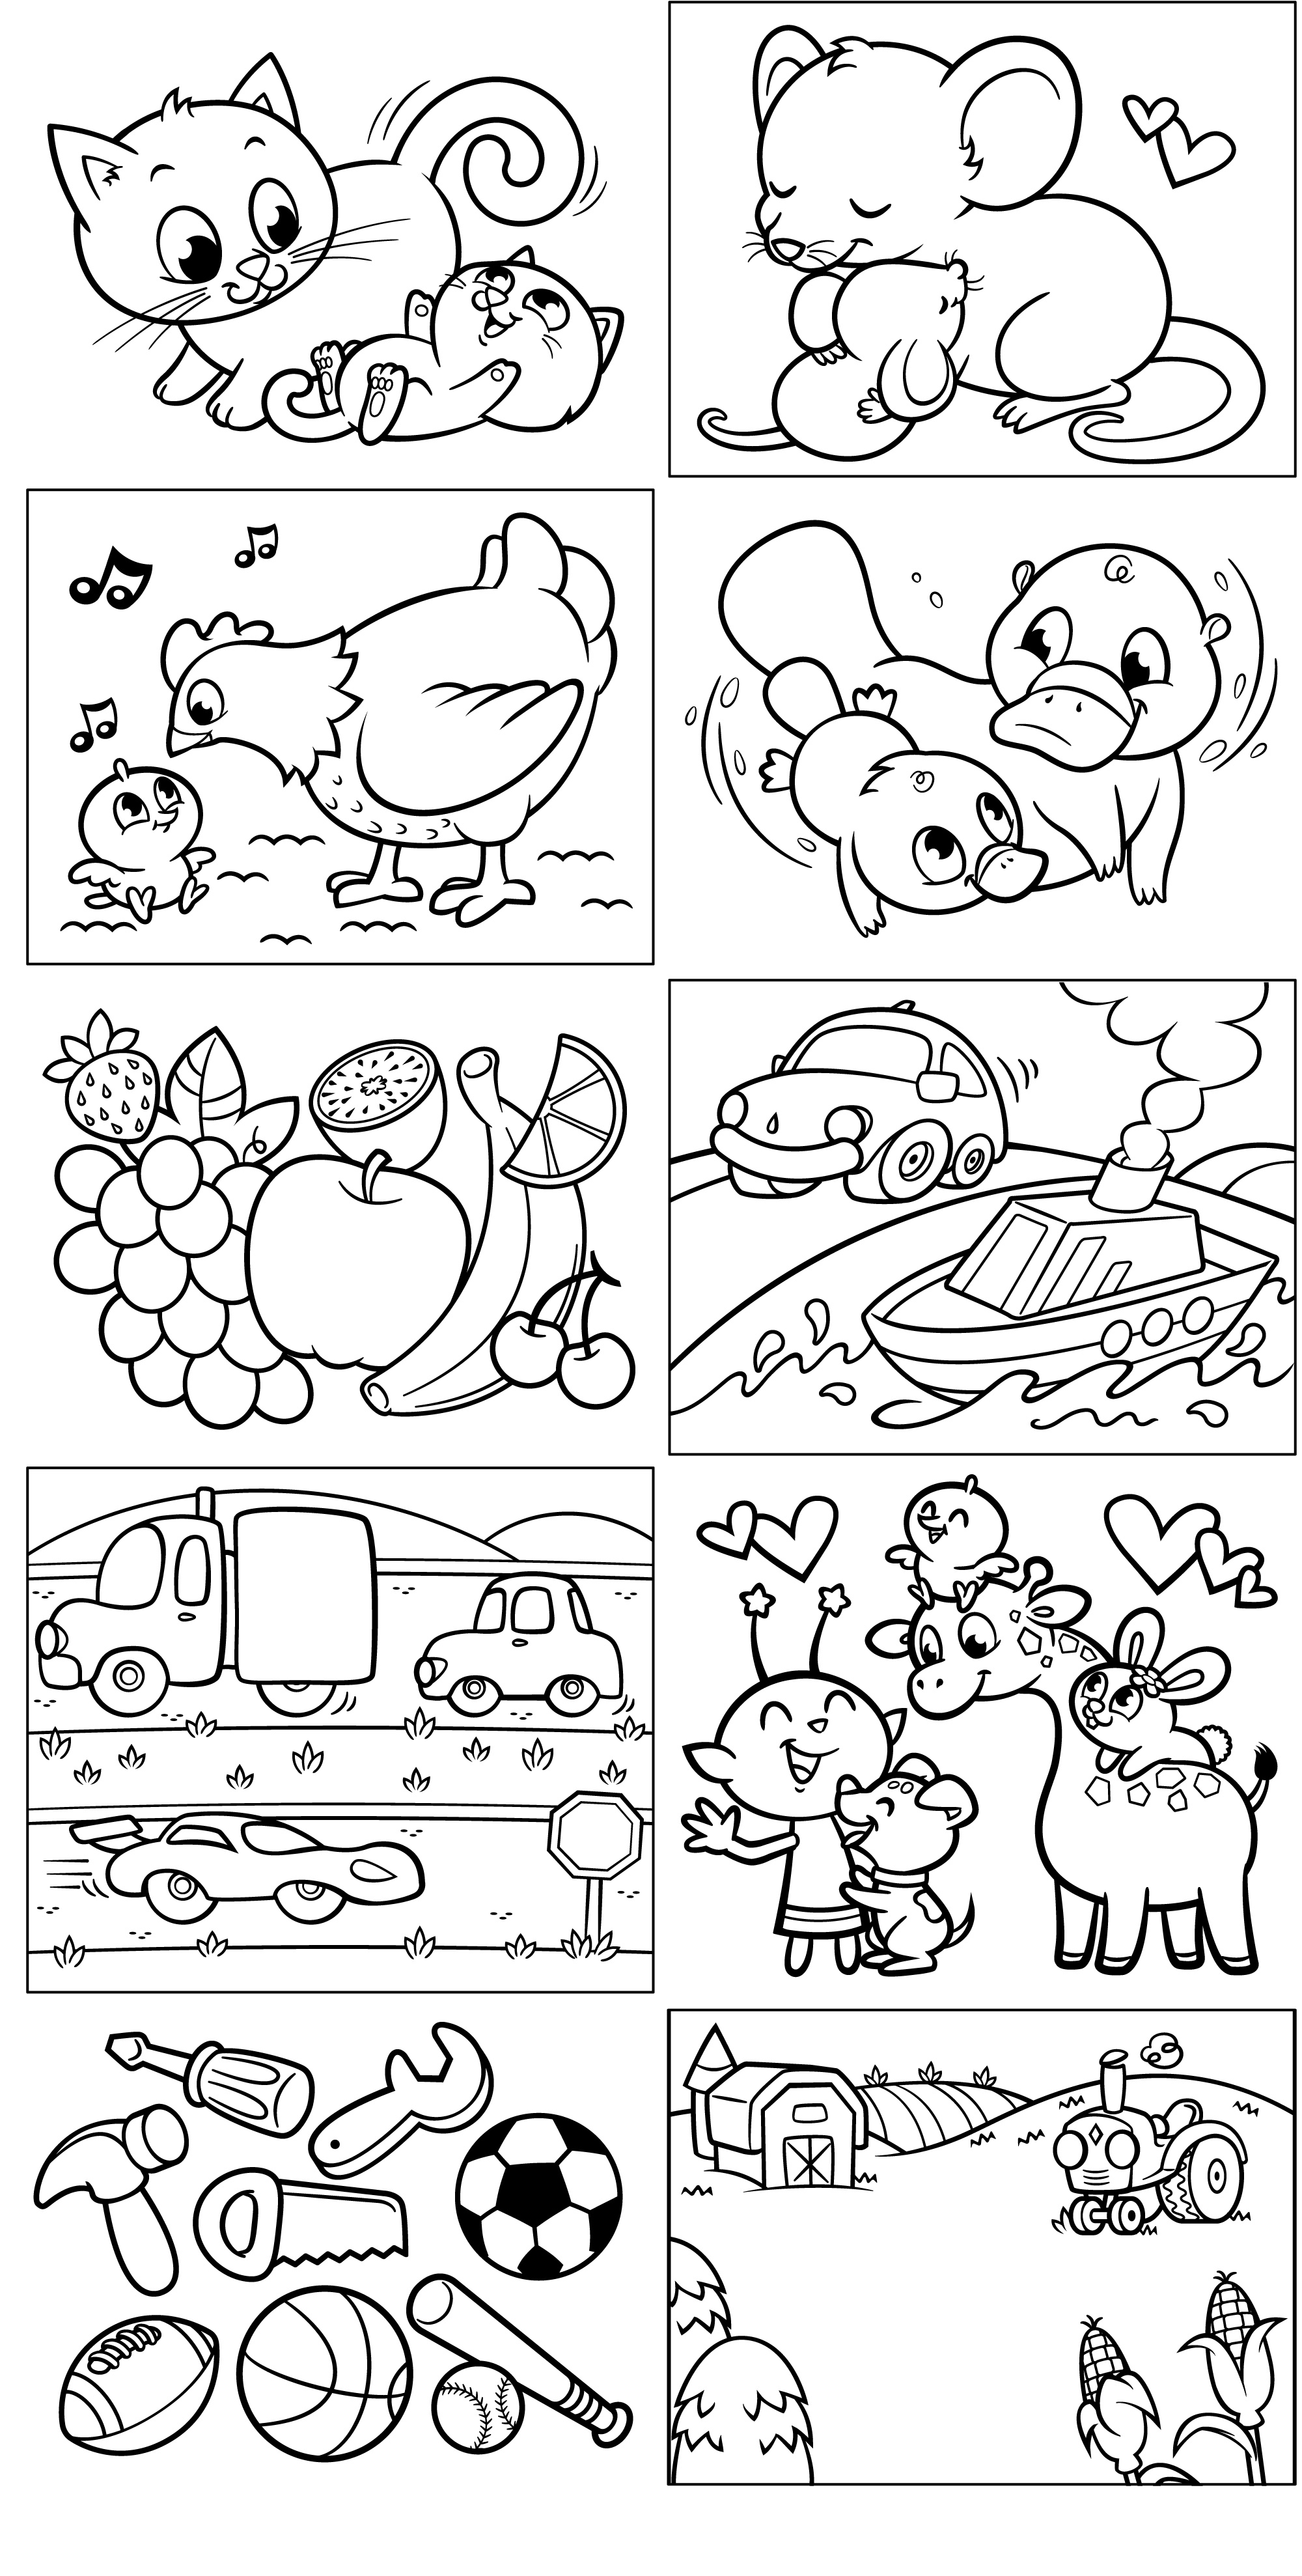 Opposites coloring pages download and print for free